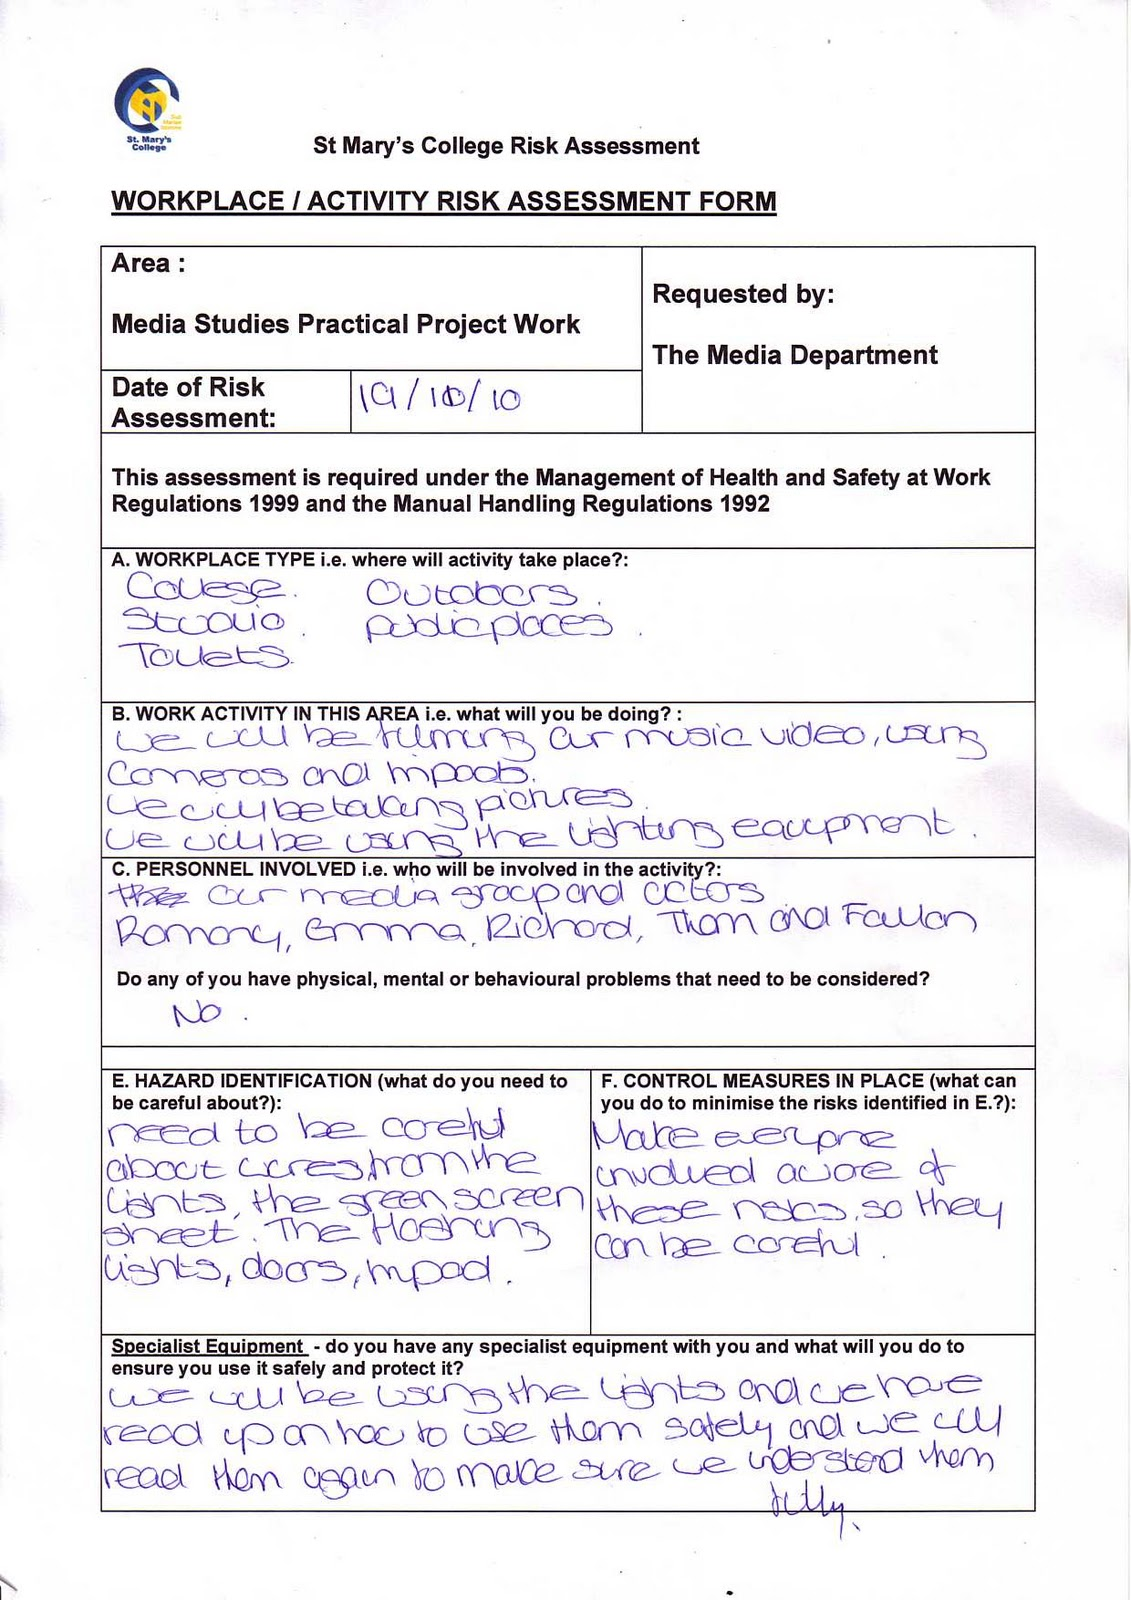 A2 Richard, Romany and Emma: Completed Rick Assessment Form